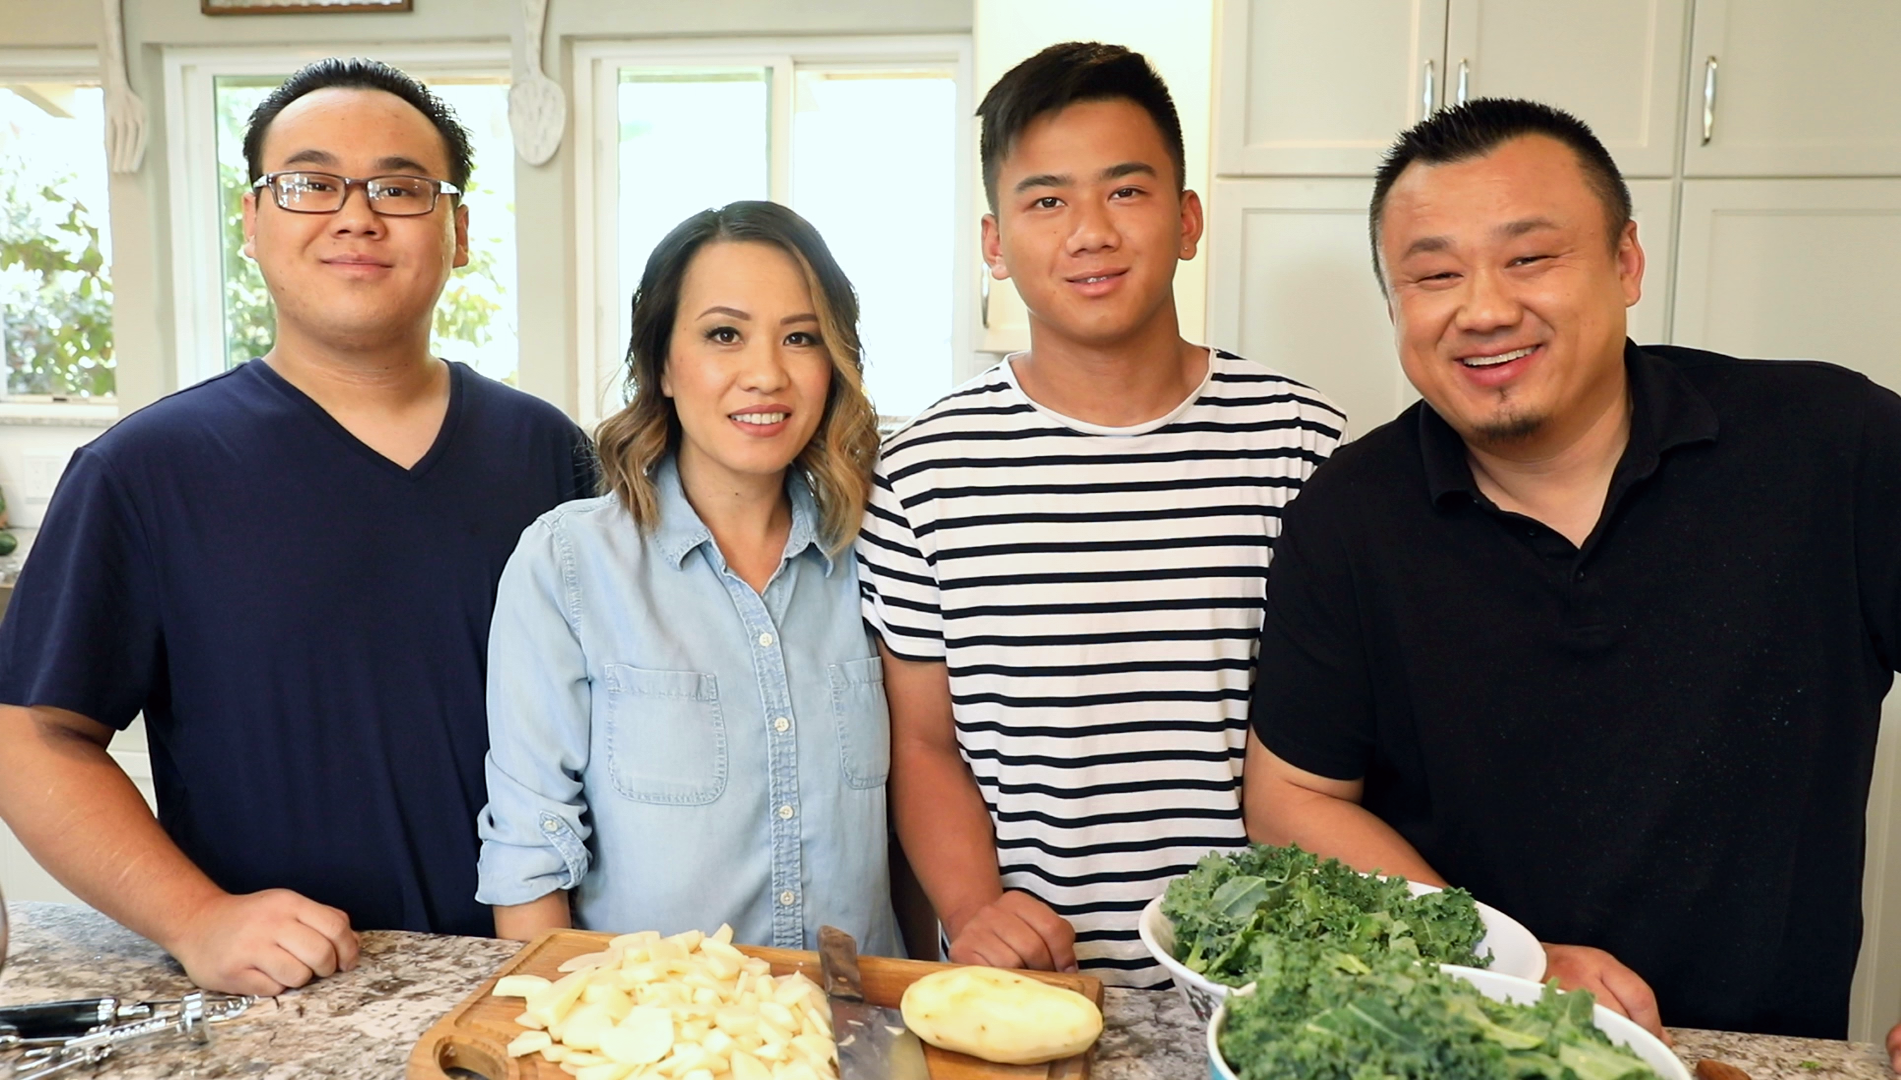 Bobby_Bliatout_kitchen_fam_grp_191012-4_BY7A7487.png